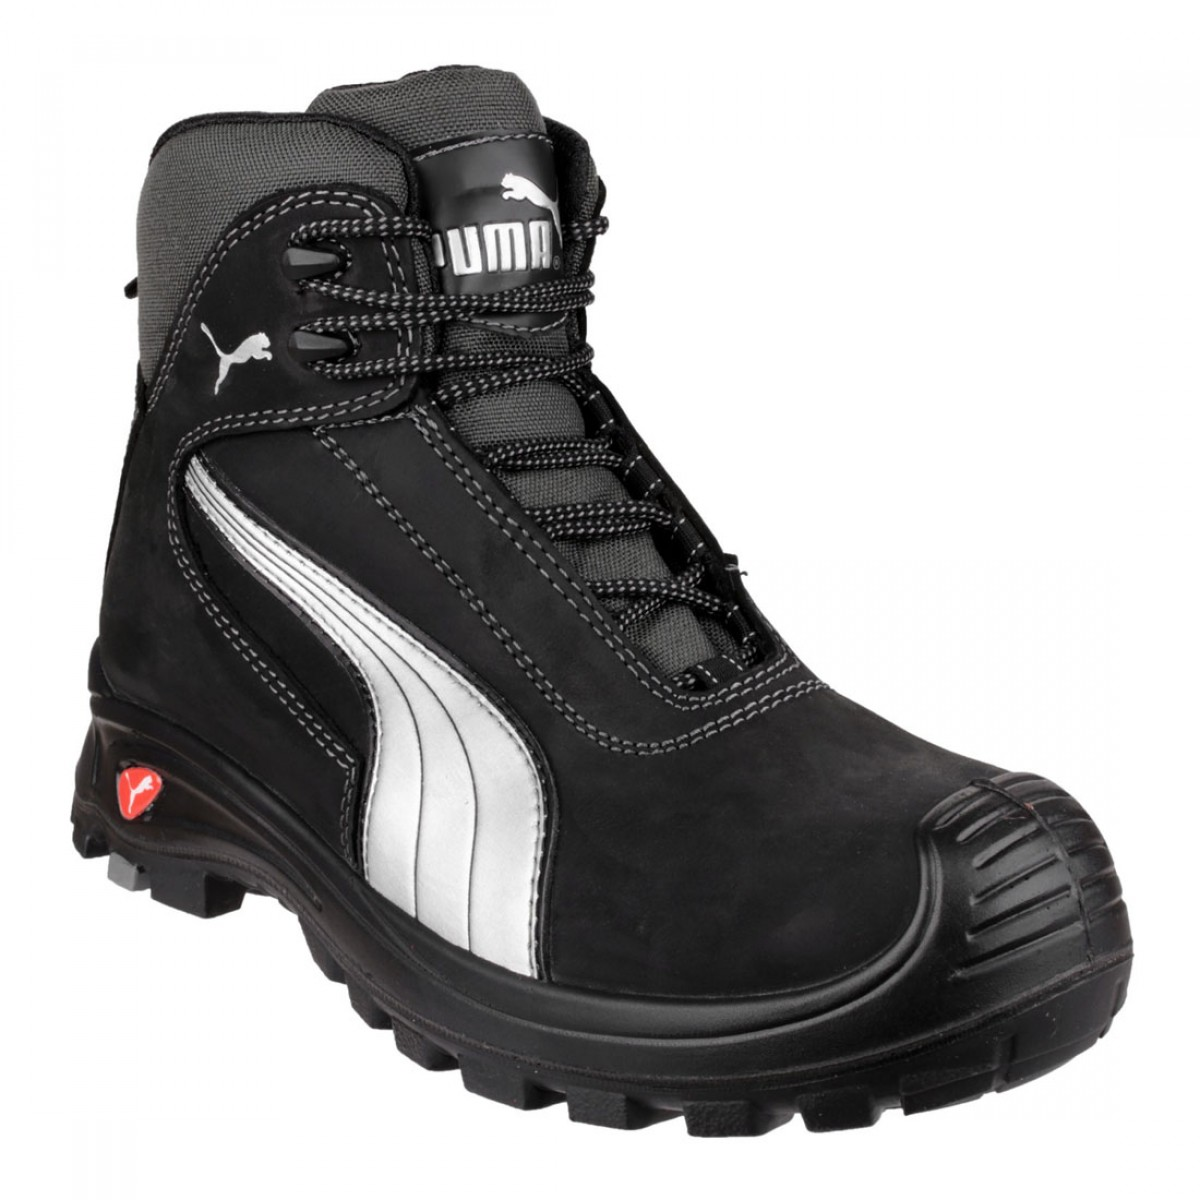 Puma Safety Boots Black Metal Free Cascades Mid Mens Work Boots ad35a238c